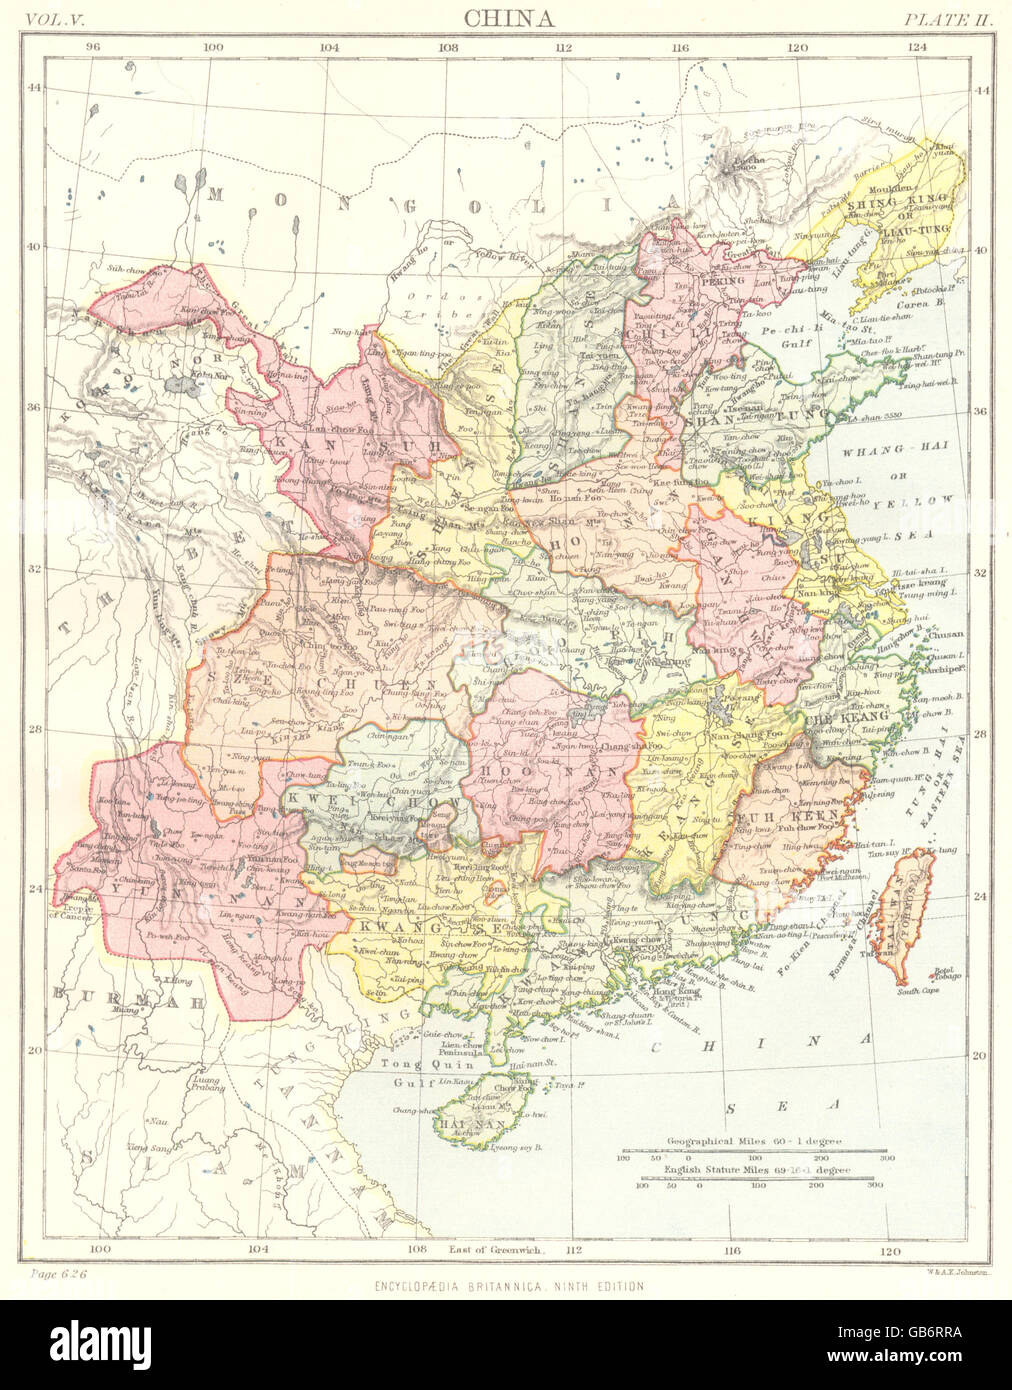 CHINA: Showing provinces. Britannica 9th edition, 1898 antique map - Stock Image